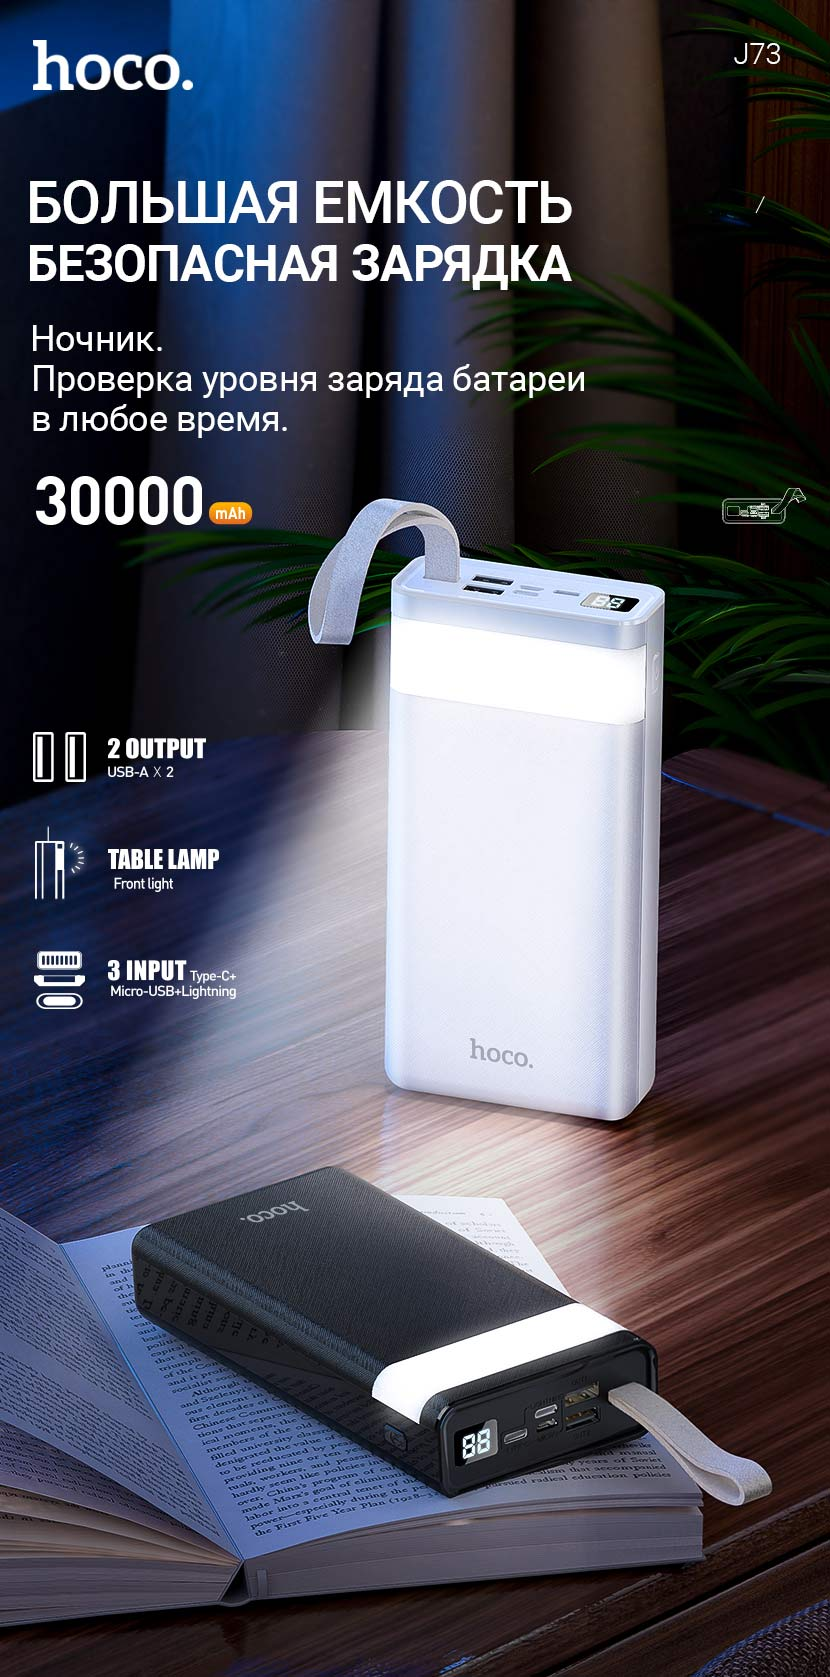 hoco news j73 powerful desk lamp power bank 30000mah ru